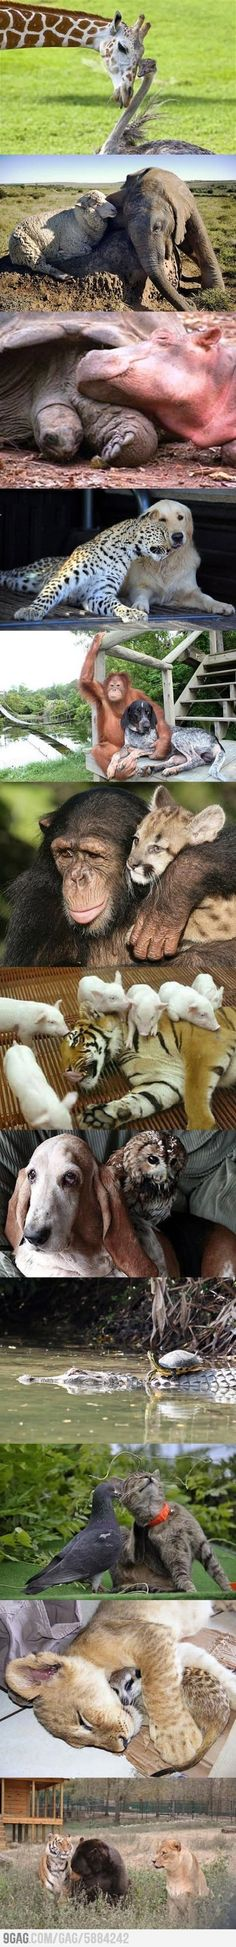 Snuggly animals